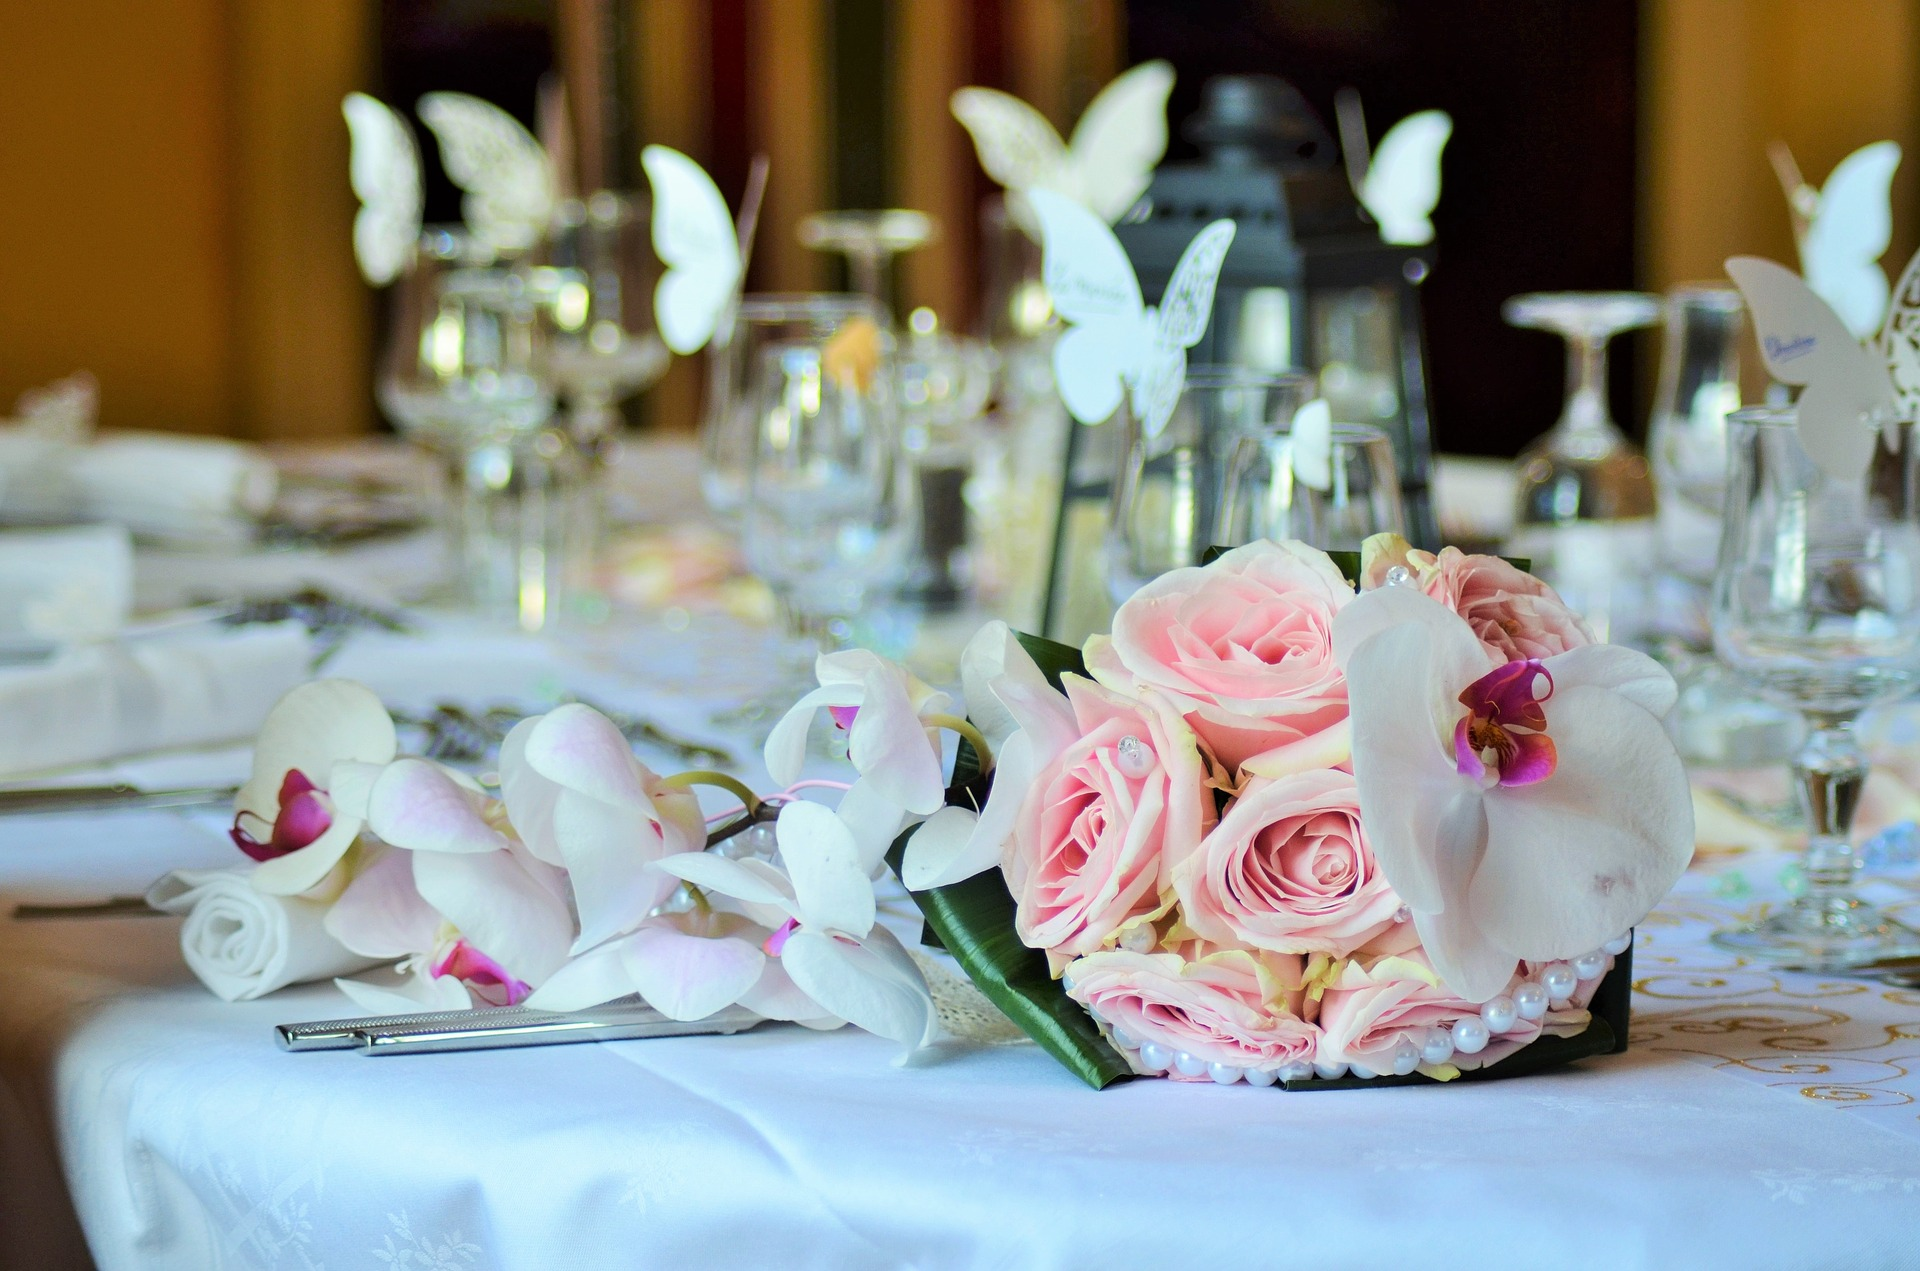 5 Unforeseen Wedding Expenses to look out for